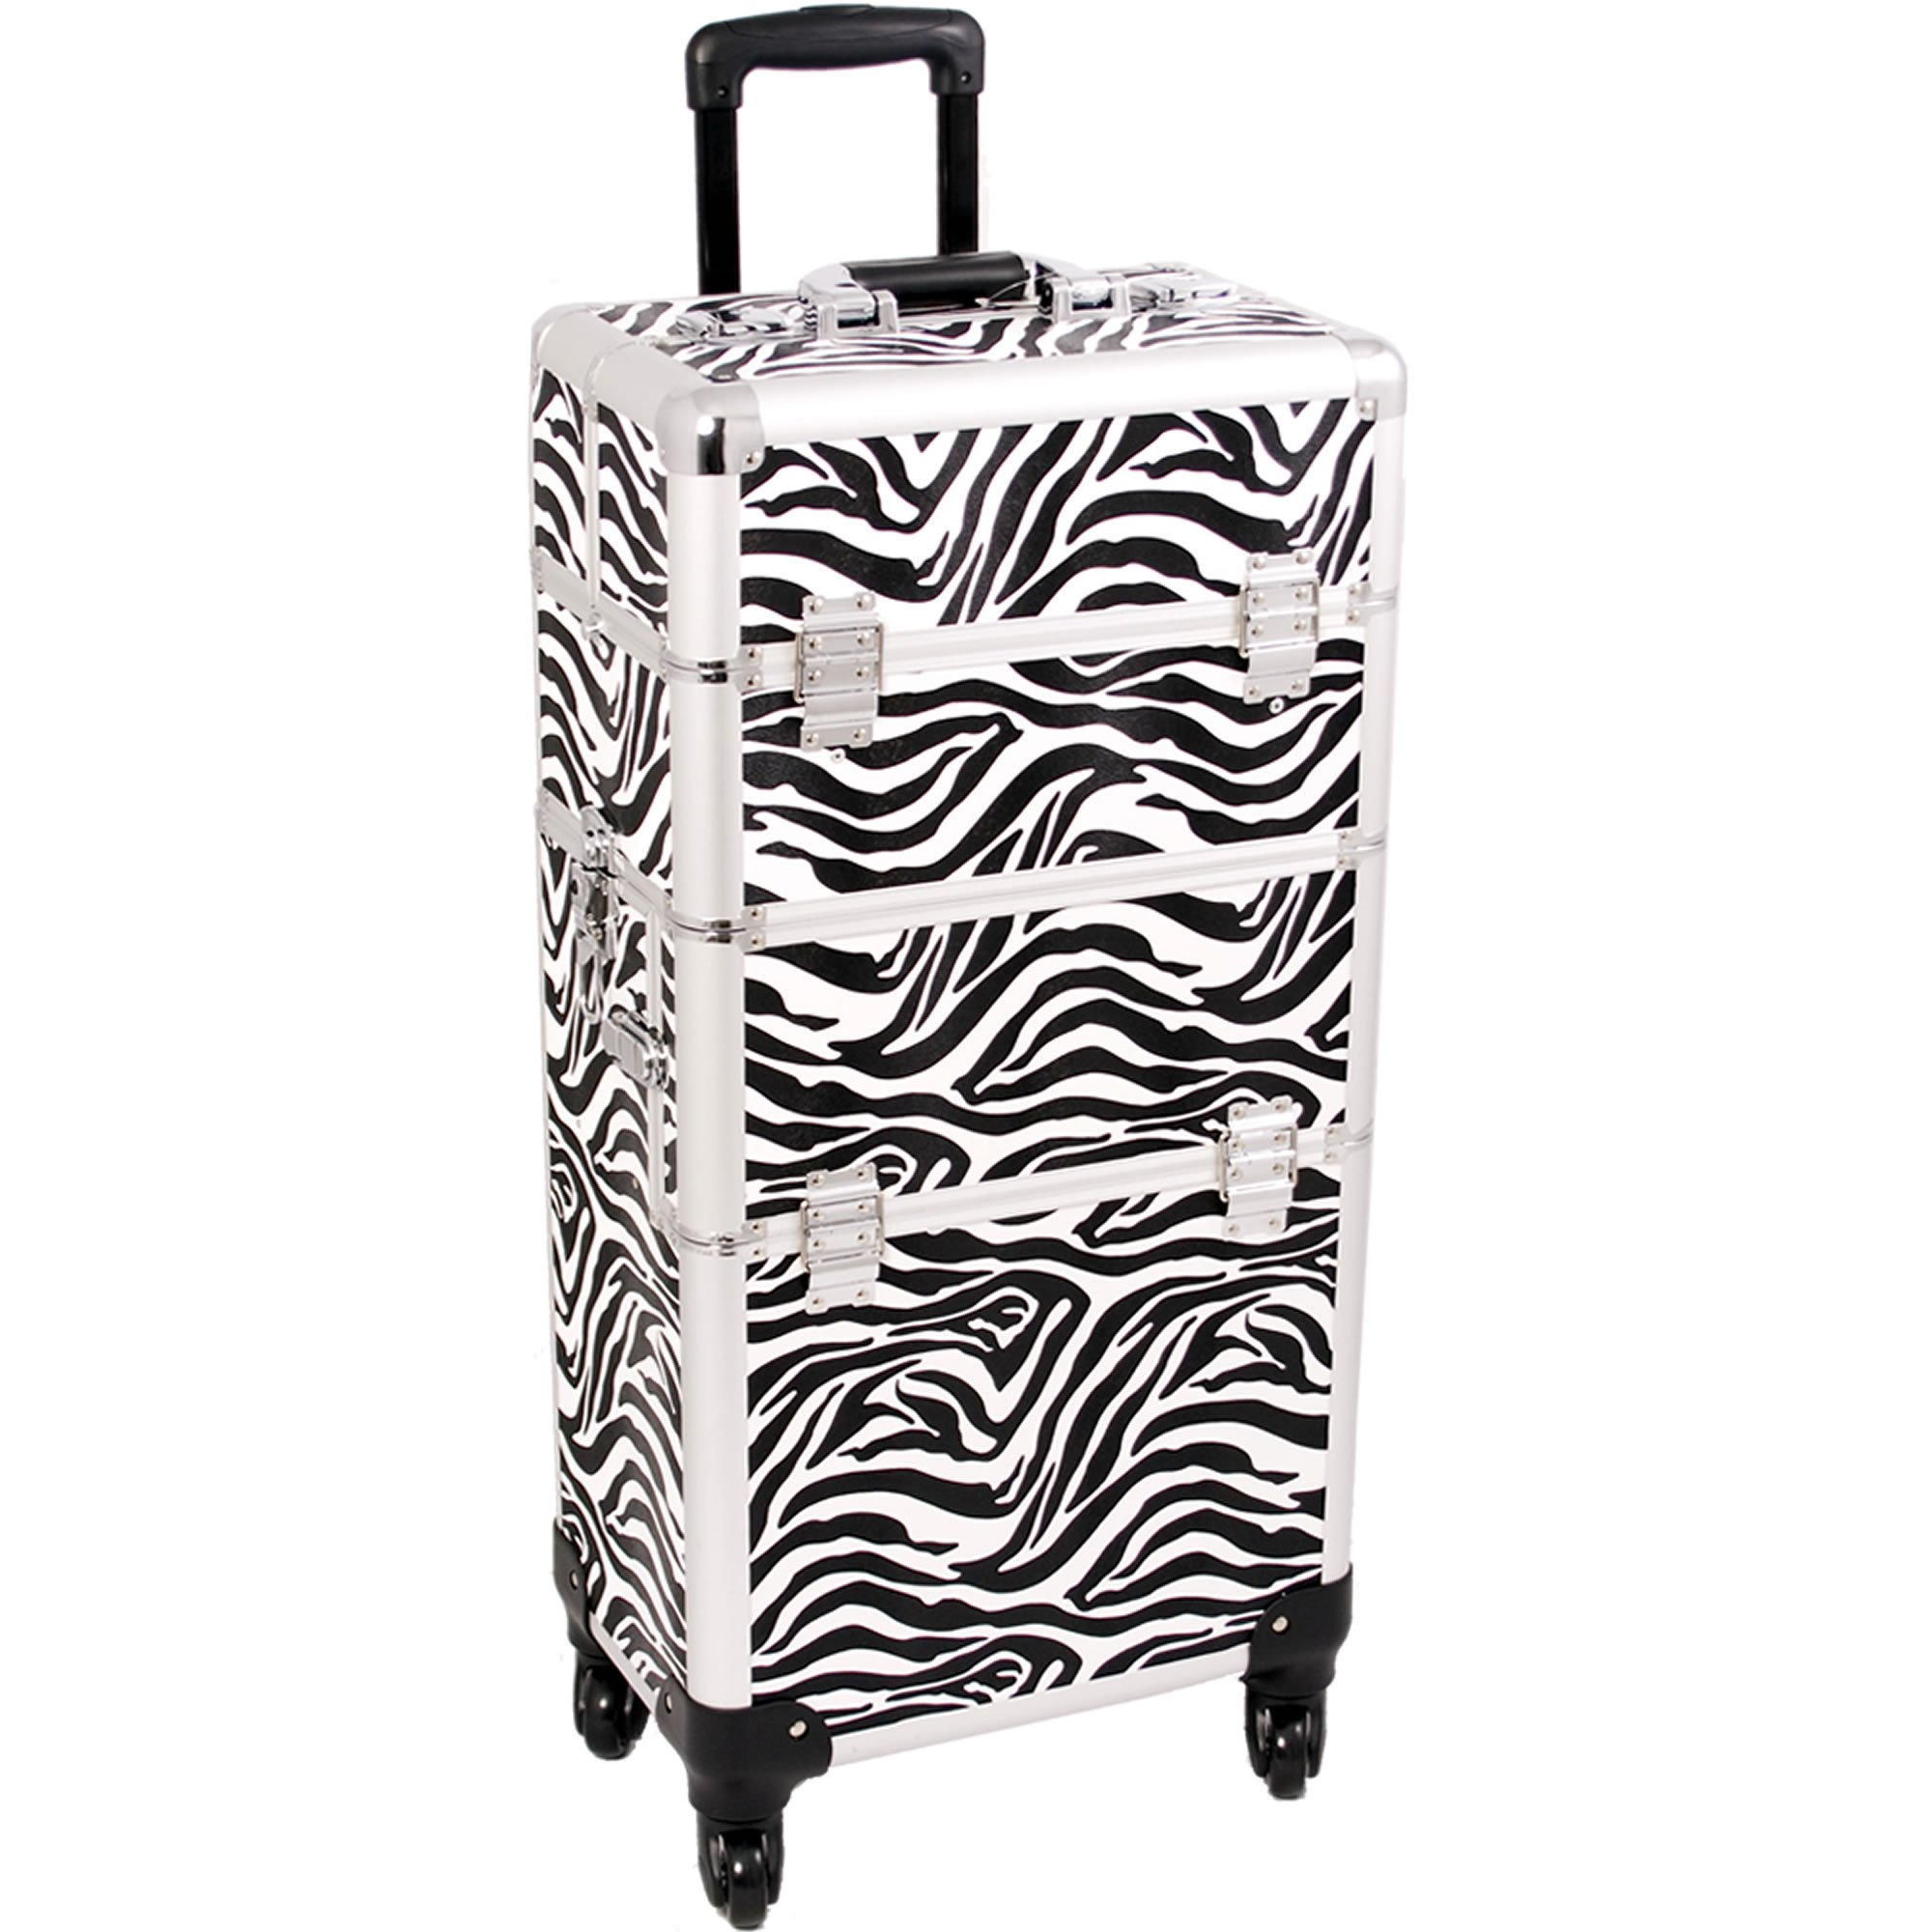 SUNRISE Makeup Case on Wheels I3261 2 in 1 Hair Stylist Organizer, 4 Wheel Spinner, 3 Trays and 1 Removable Tray, Locking with Mirror and Shoulder Strap, White Zebra by SunRise